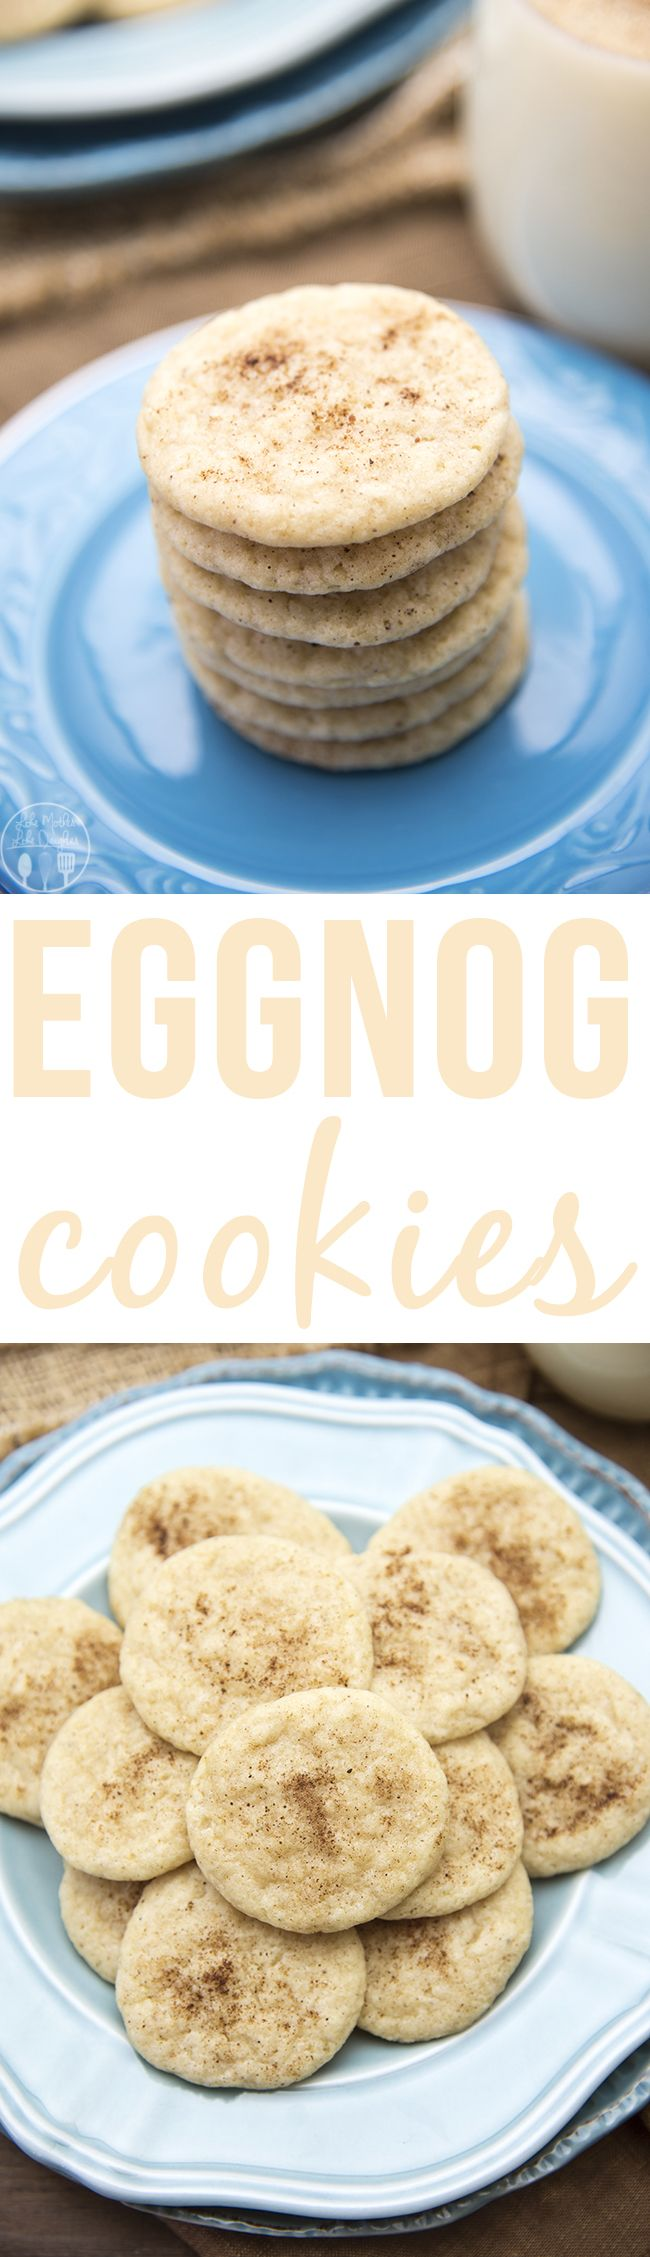 Eggnog Cookies - These delicious eggnog cookies have the great taste of eggnog in a cookie! With 1/2 cup of eggnog, cinnamon, and nutmeg, these are the perfect holiday cookies! #shareyourdelight #ad